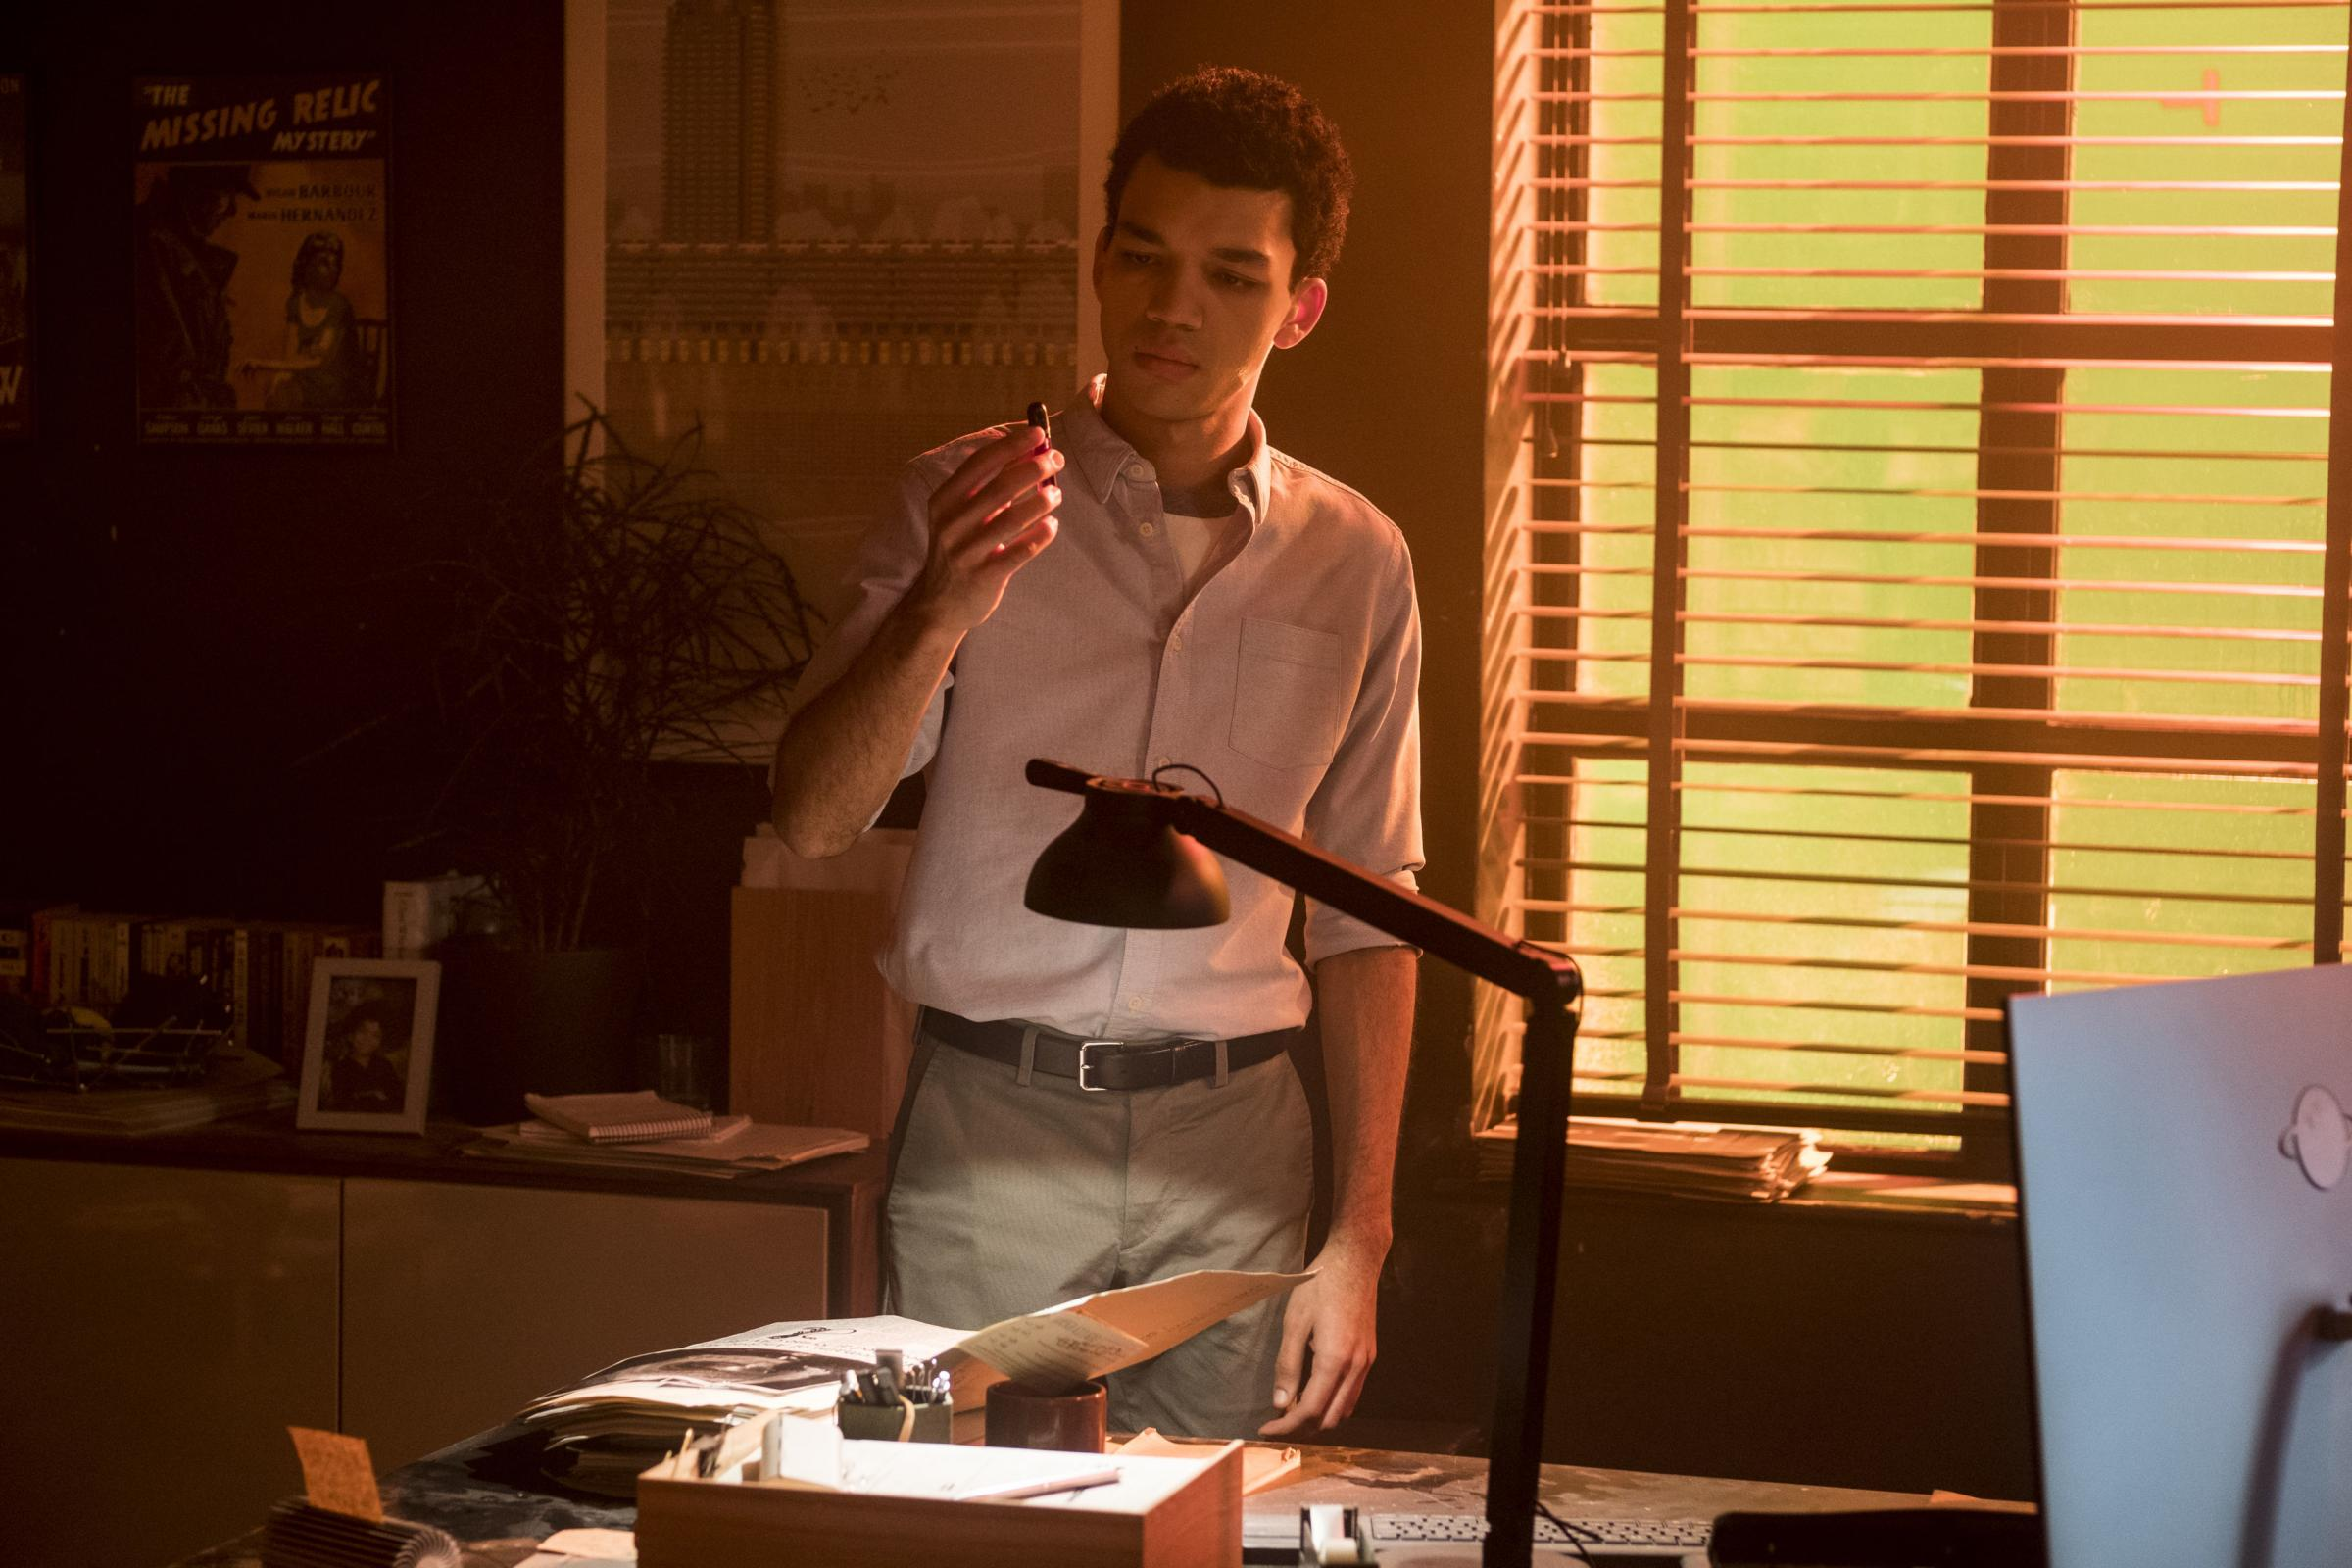 Justice Smith as Tim Goodman.  PA Photo/Legendary/Warner Bros. Entertainment Inc./Giles Keyte